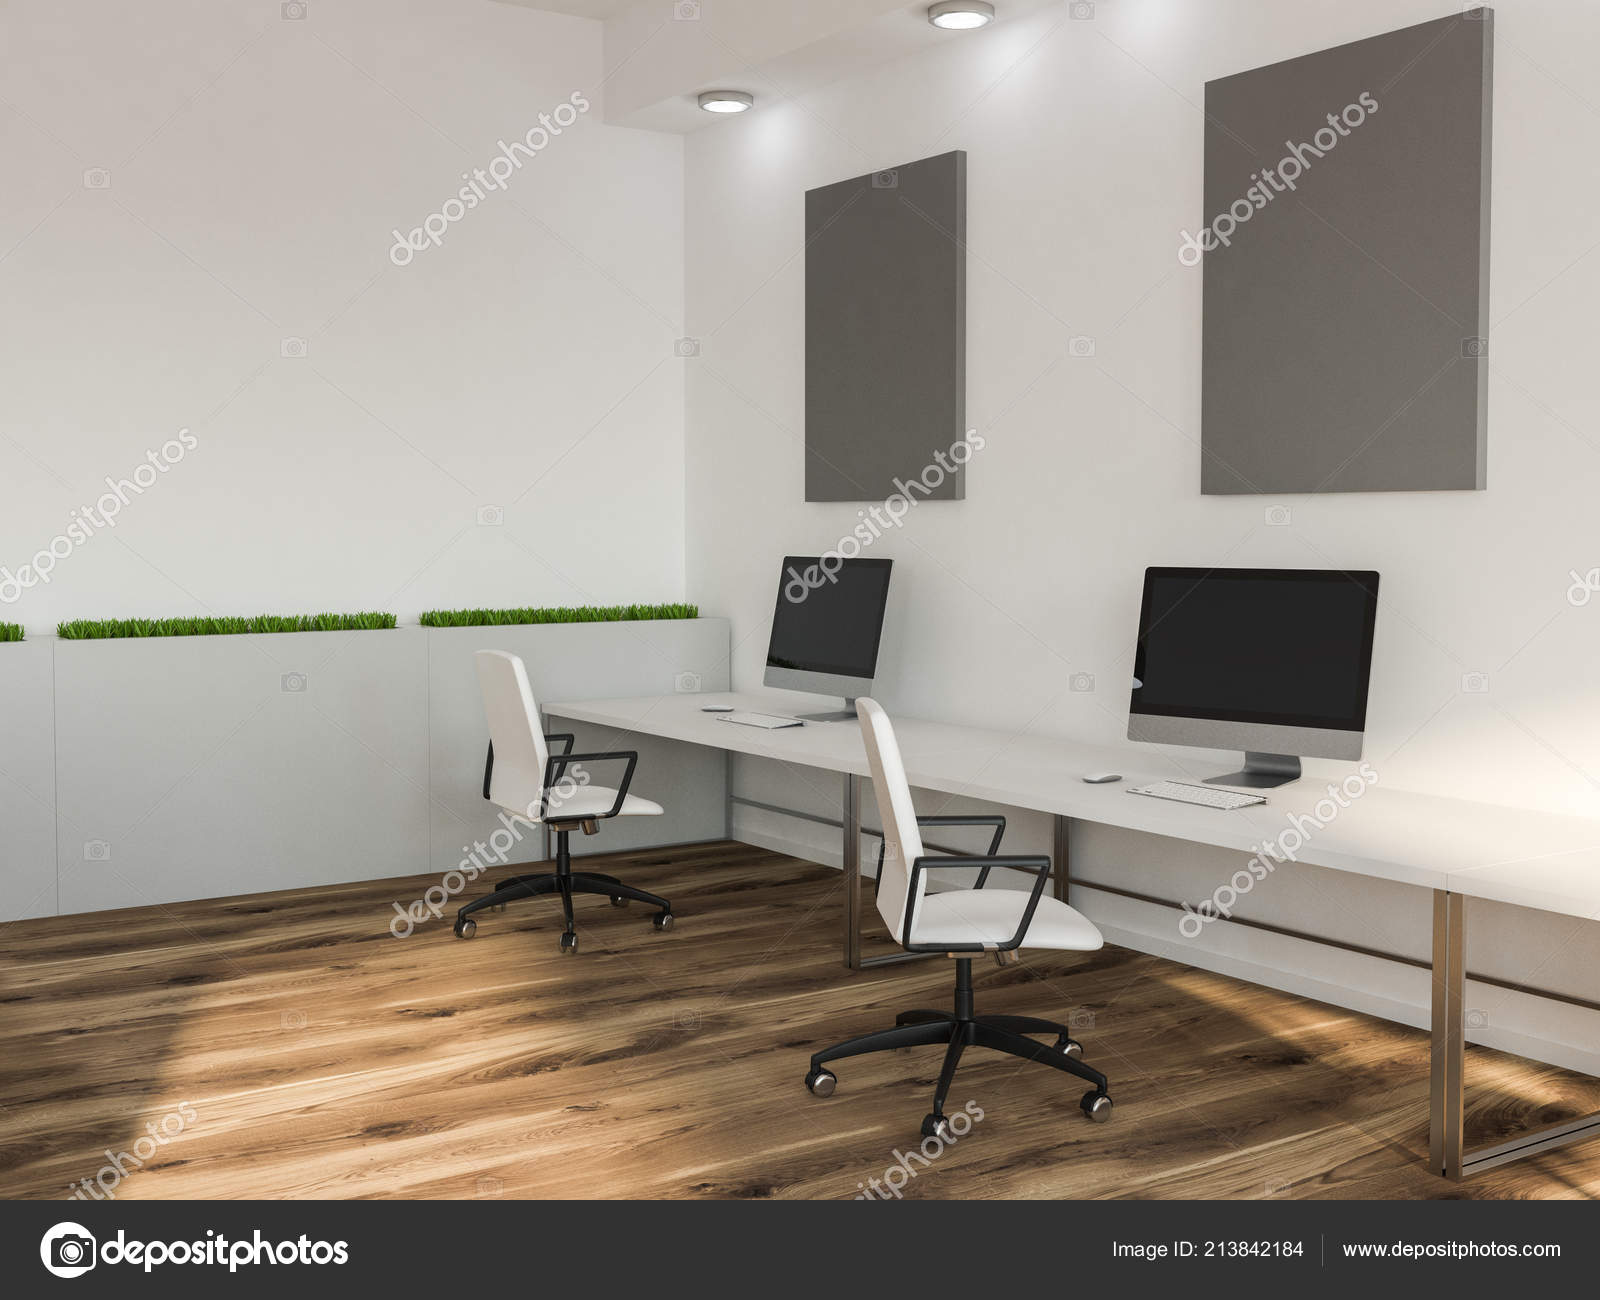 Black Computer Screens White Office Computer Lab Tables Gray